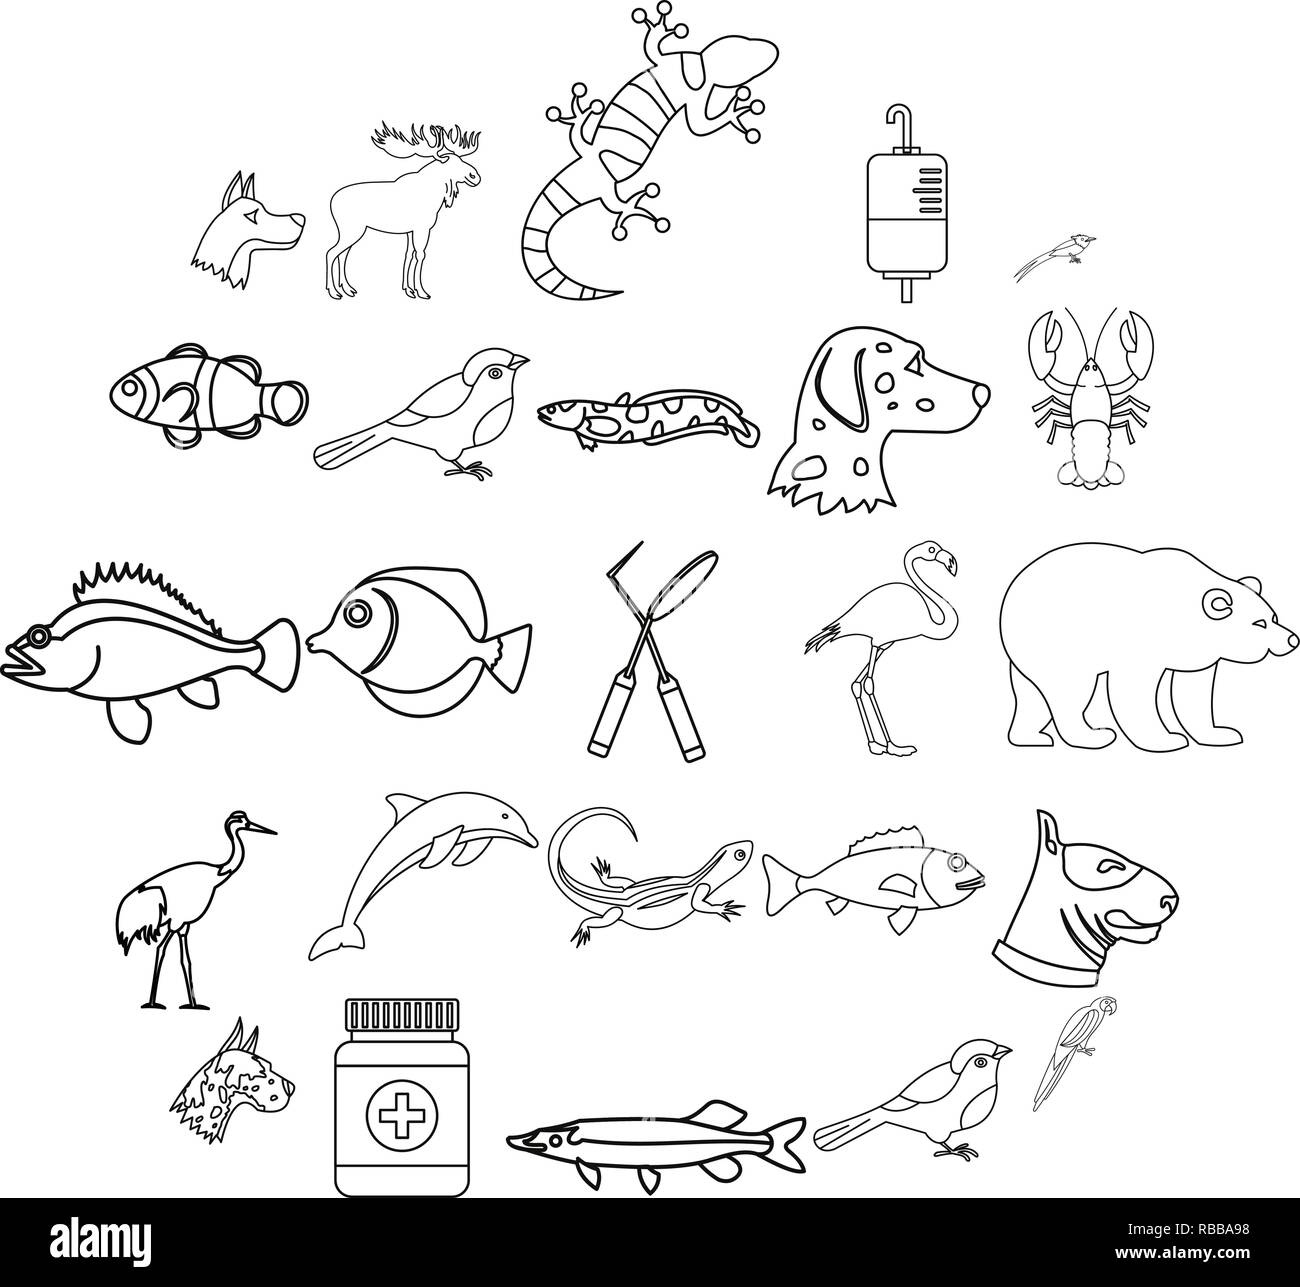 Sick animal icons set, outline style - Stock Image